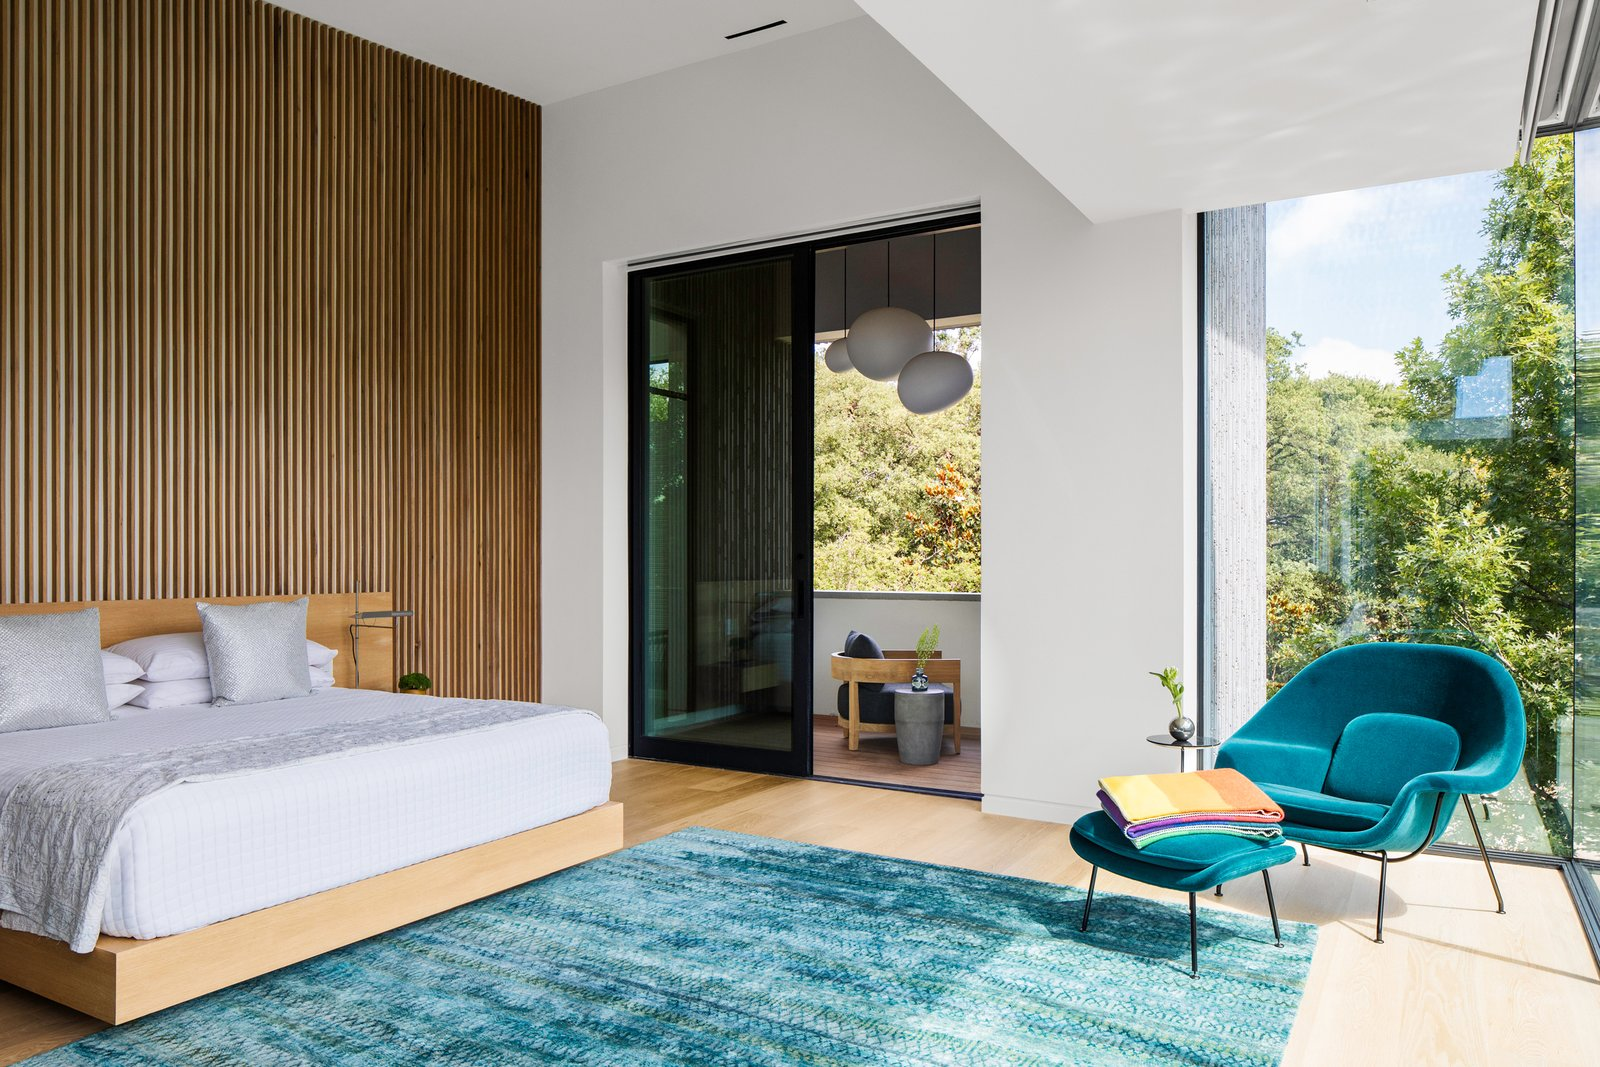 Bedroom, Bed, Light Hardwood Floor, Recessed Lighting, and Chair Taula House by M Gooden Design     Master Bedroom  Taula House by M Gooden Design